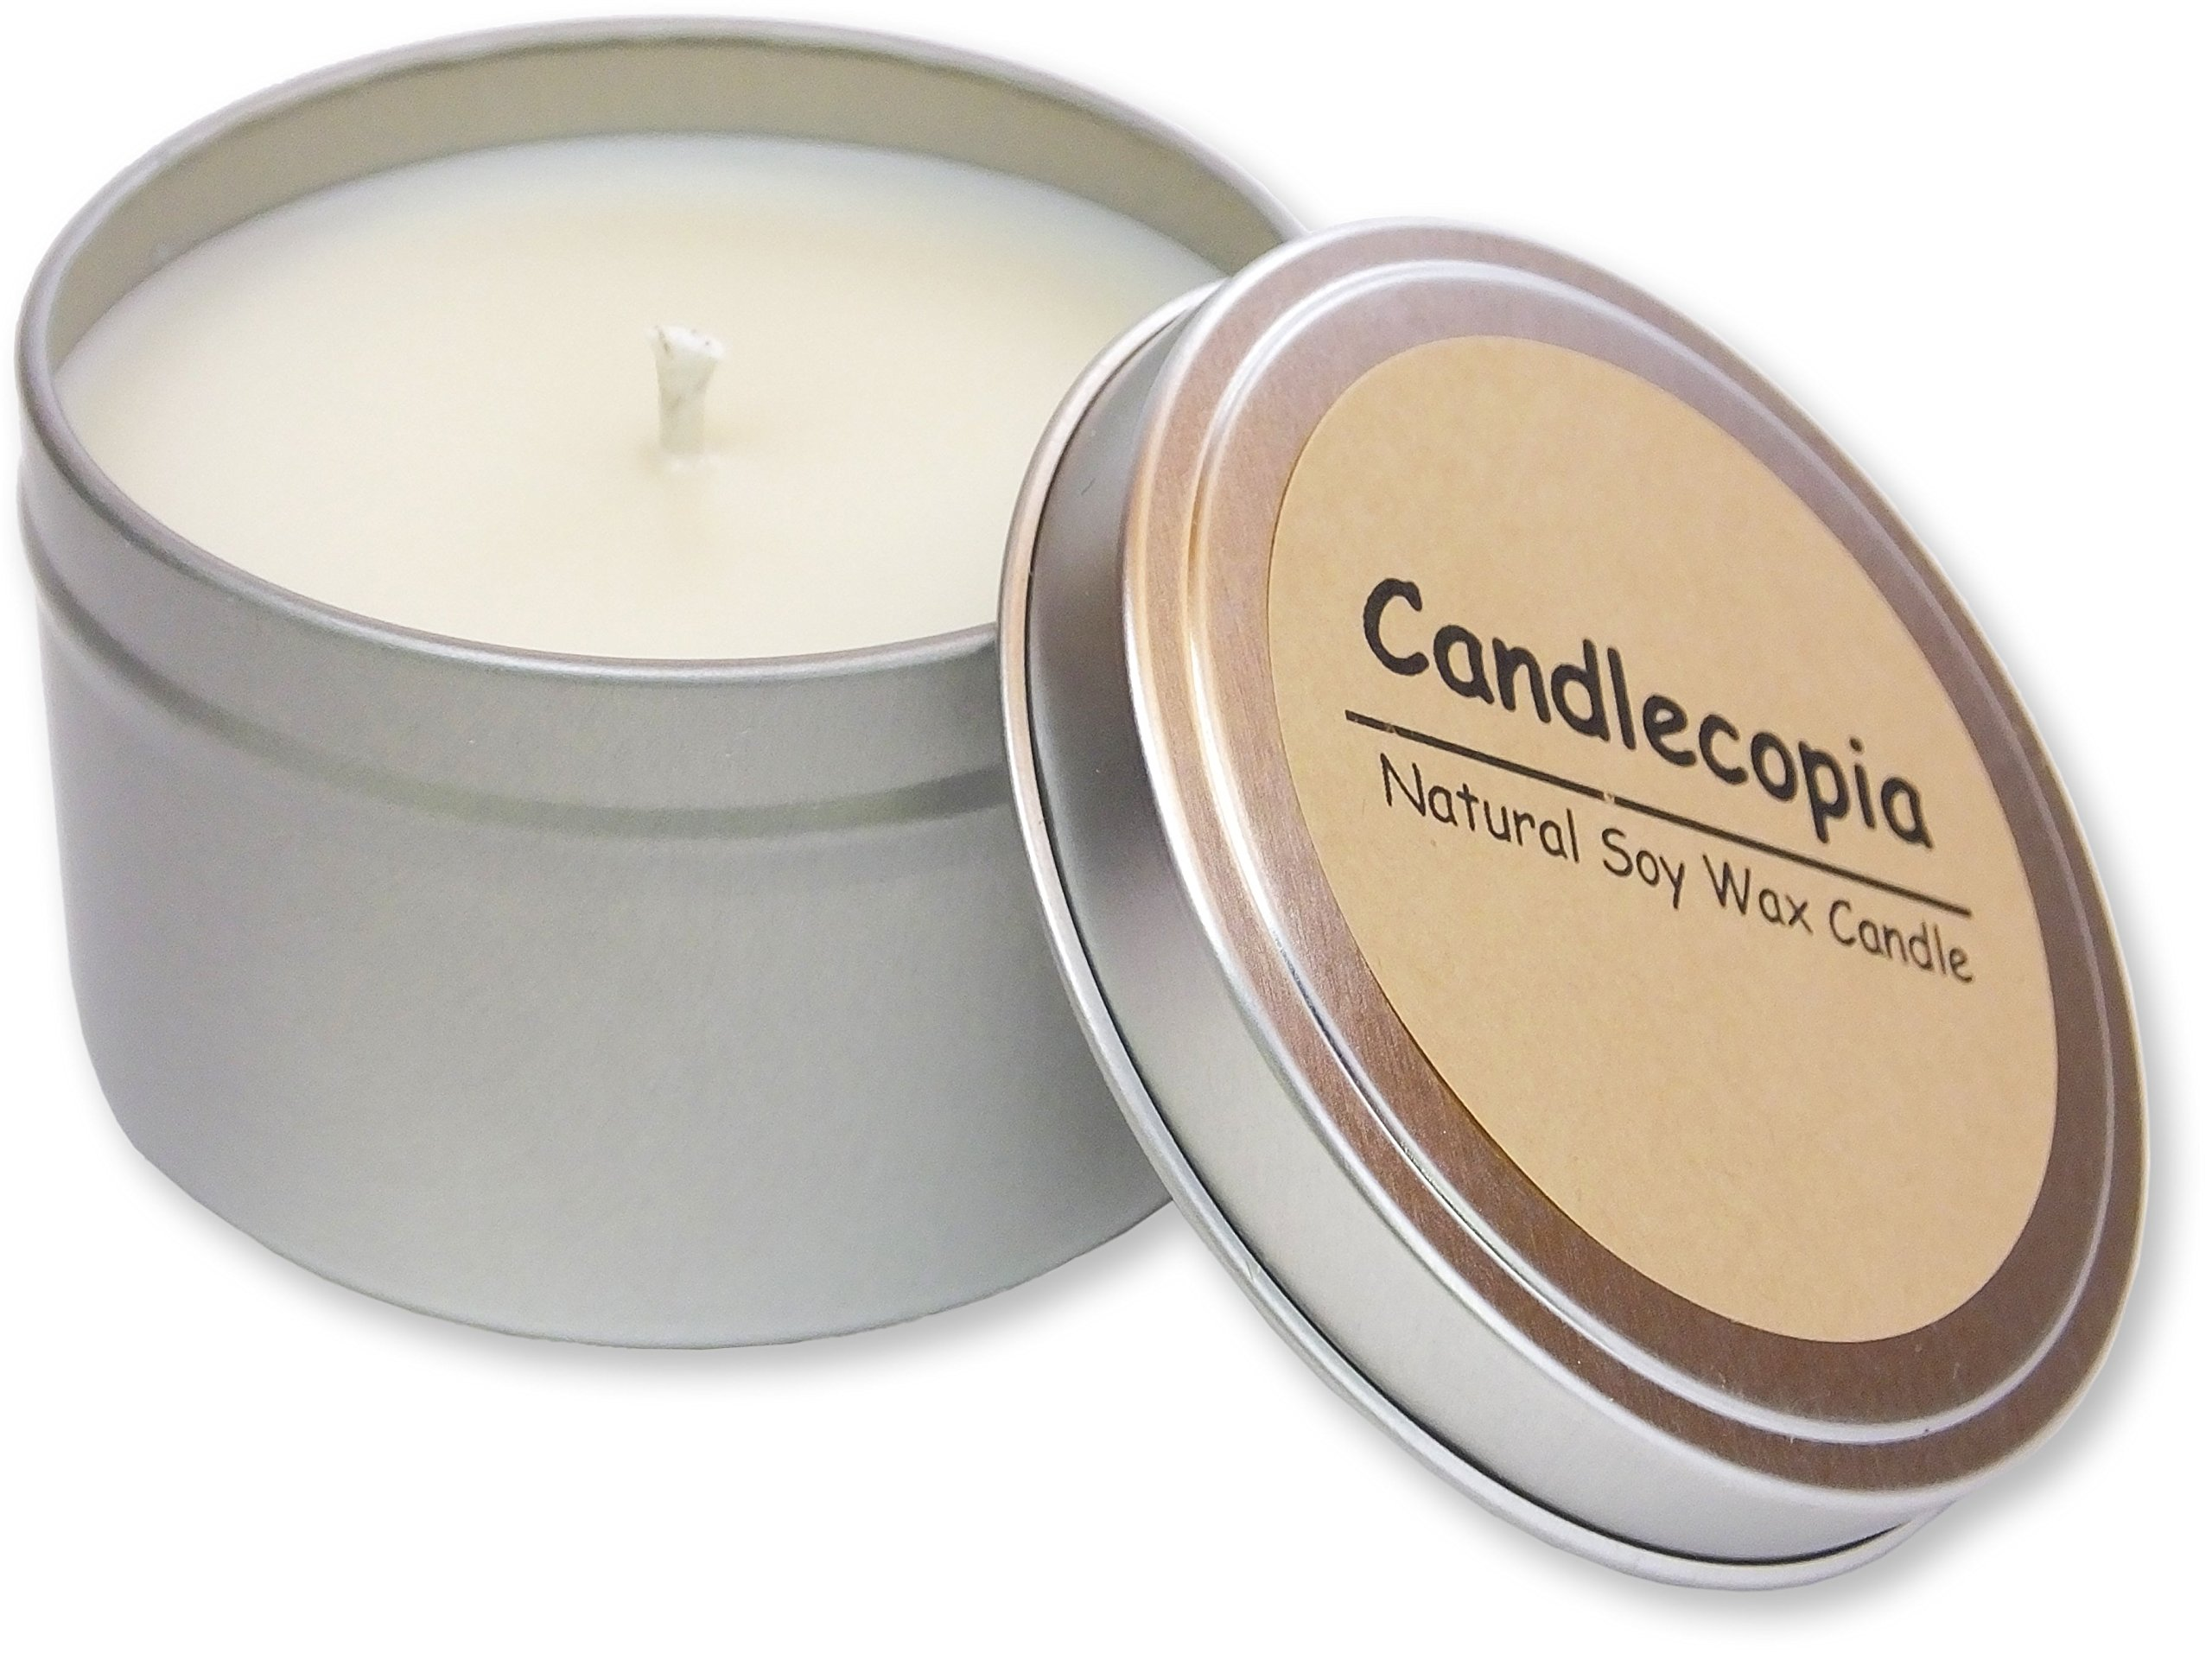 Candlecopia Gardenia Strongly Scented Sustainable Vegan Natural Soy Travel Tin Candle by Candlecopia